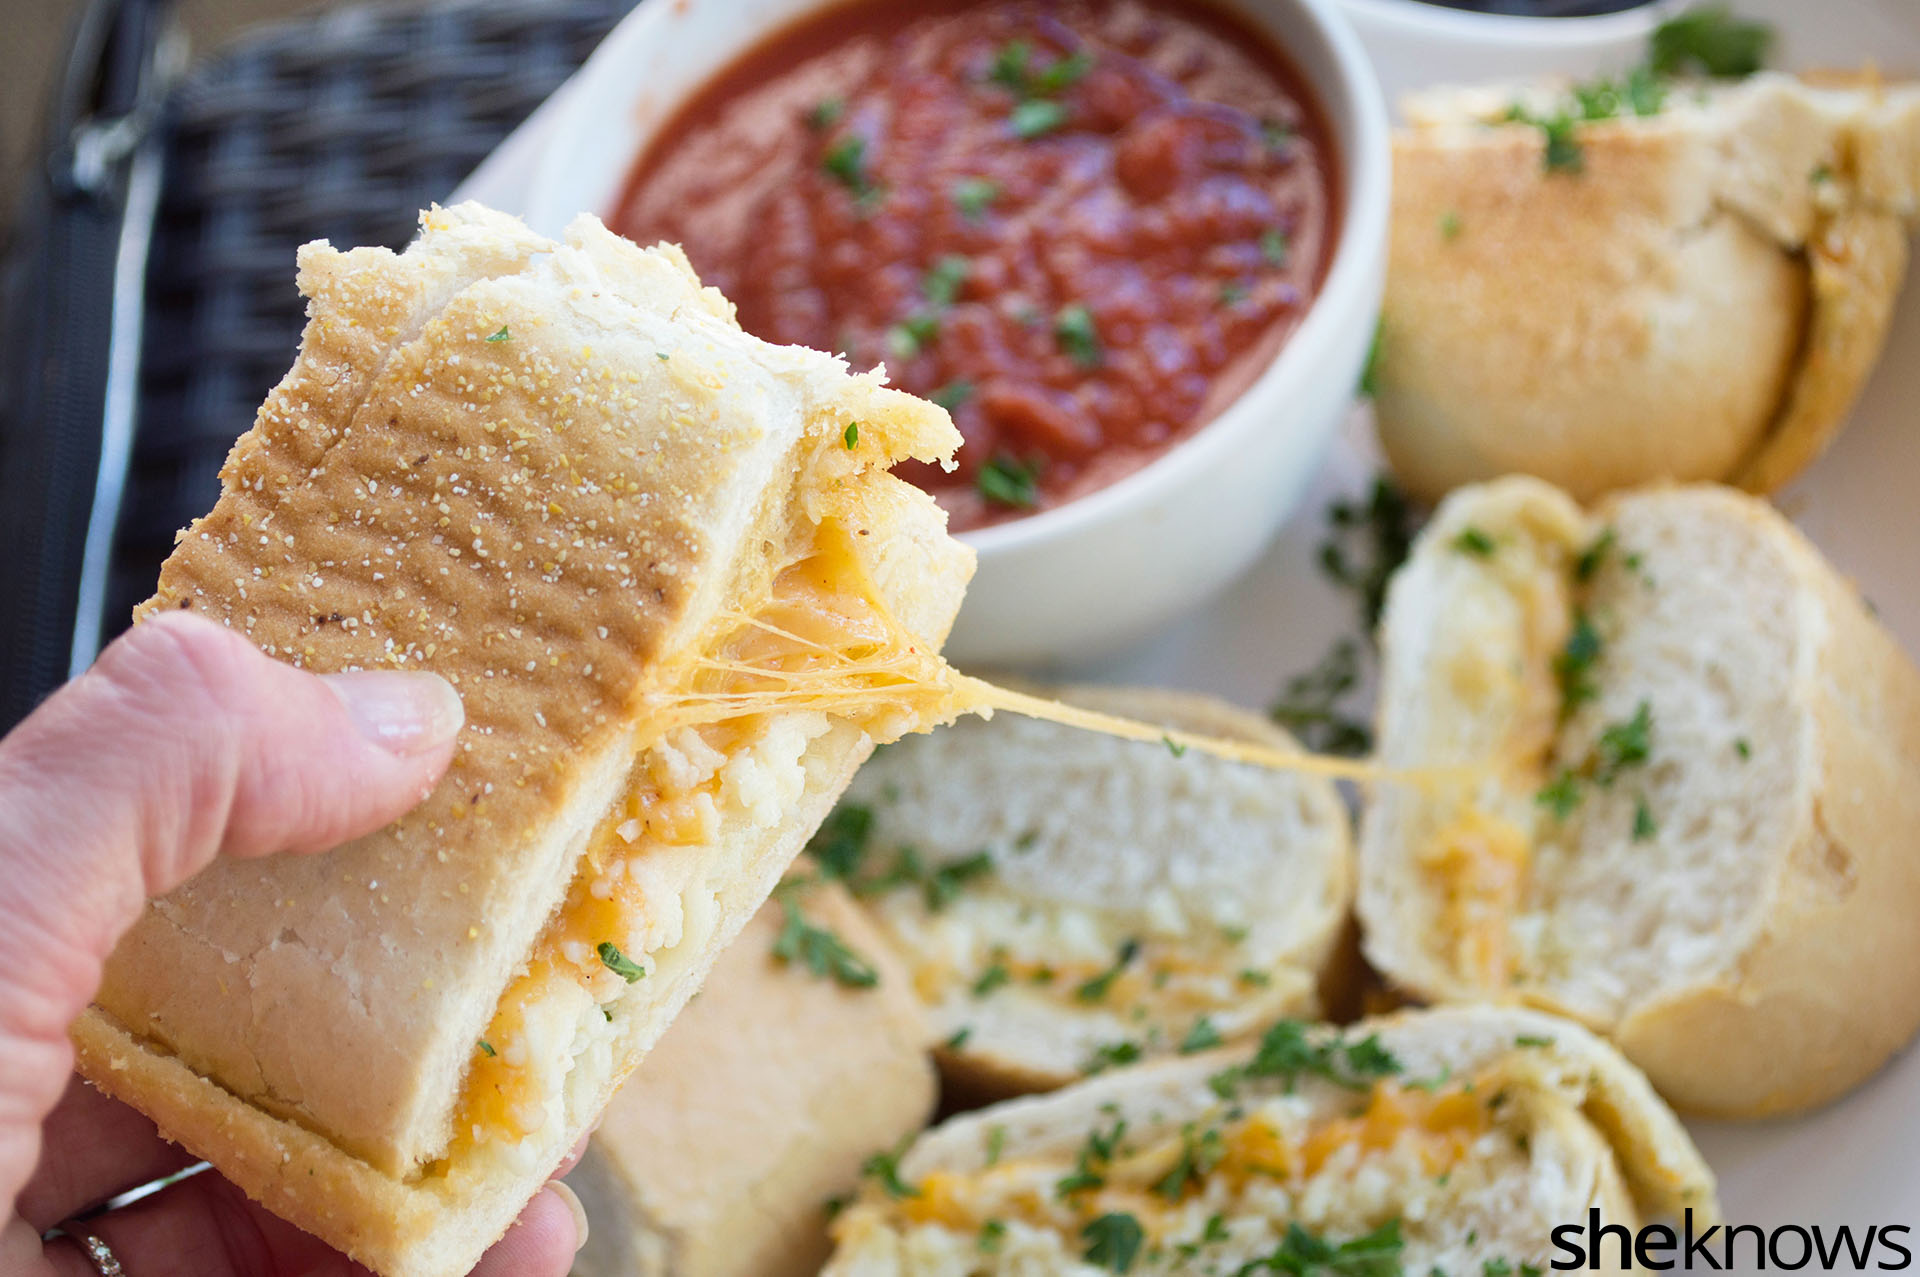 3-Cheese garlic bread sandwiches are the grilled cheese ...